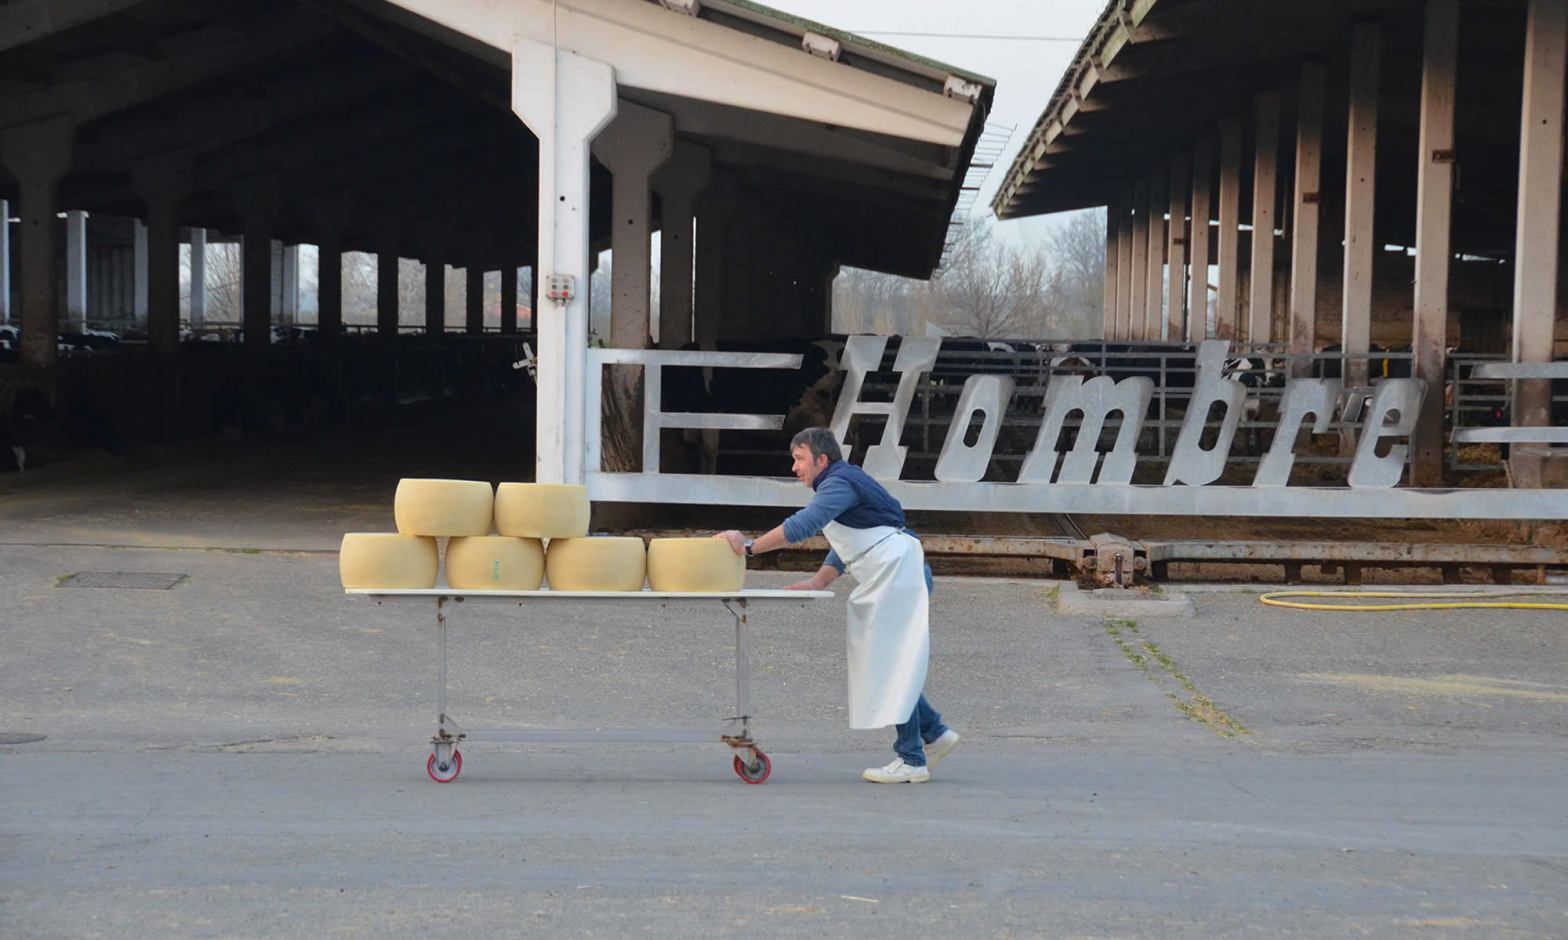 A man pushes 6 wheels of Parmigiano Reggiano cheese at the Hombre Farm near Modena, Italy.